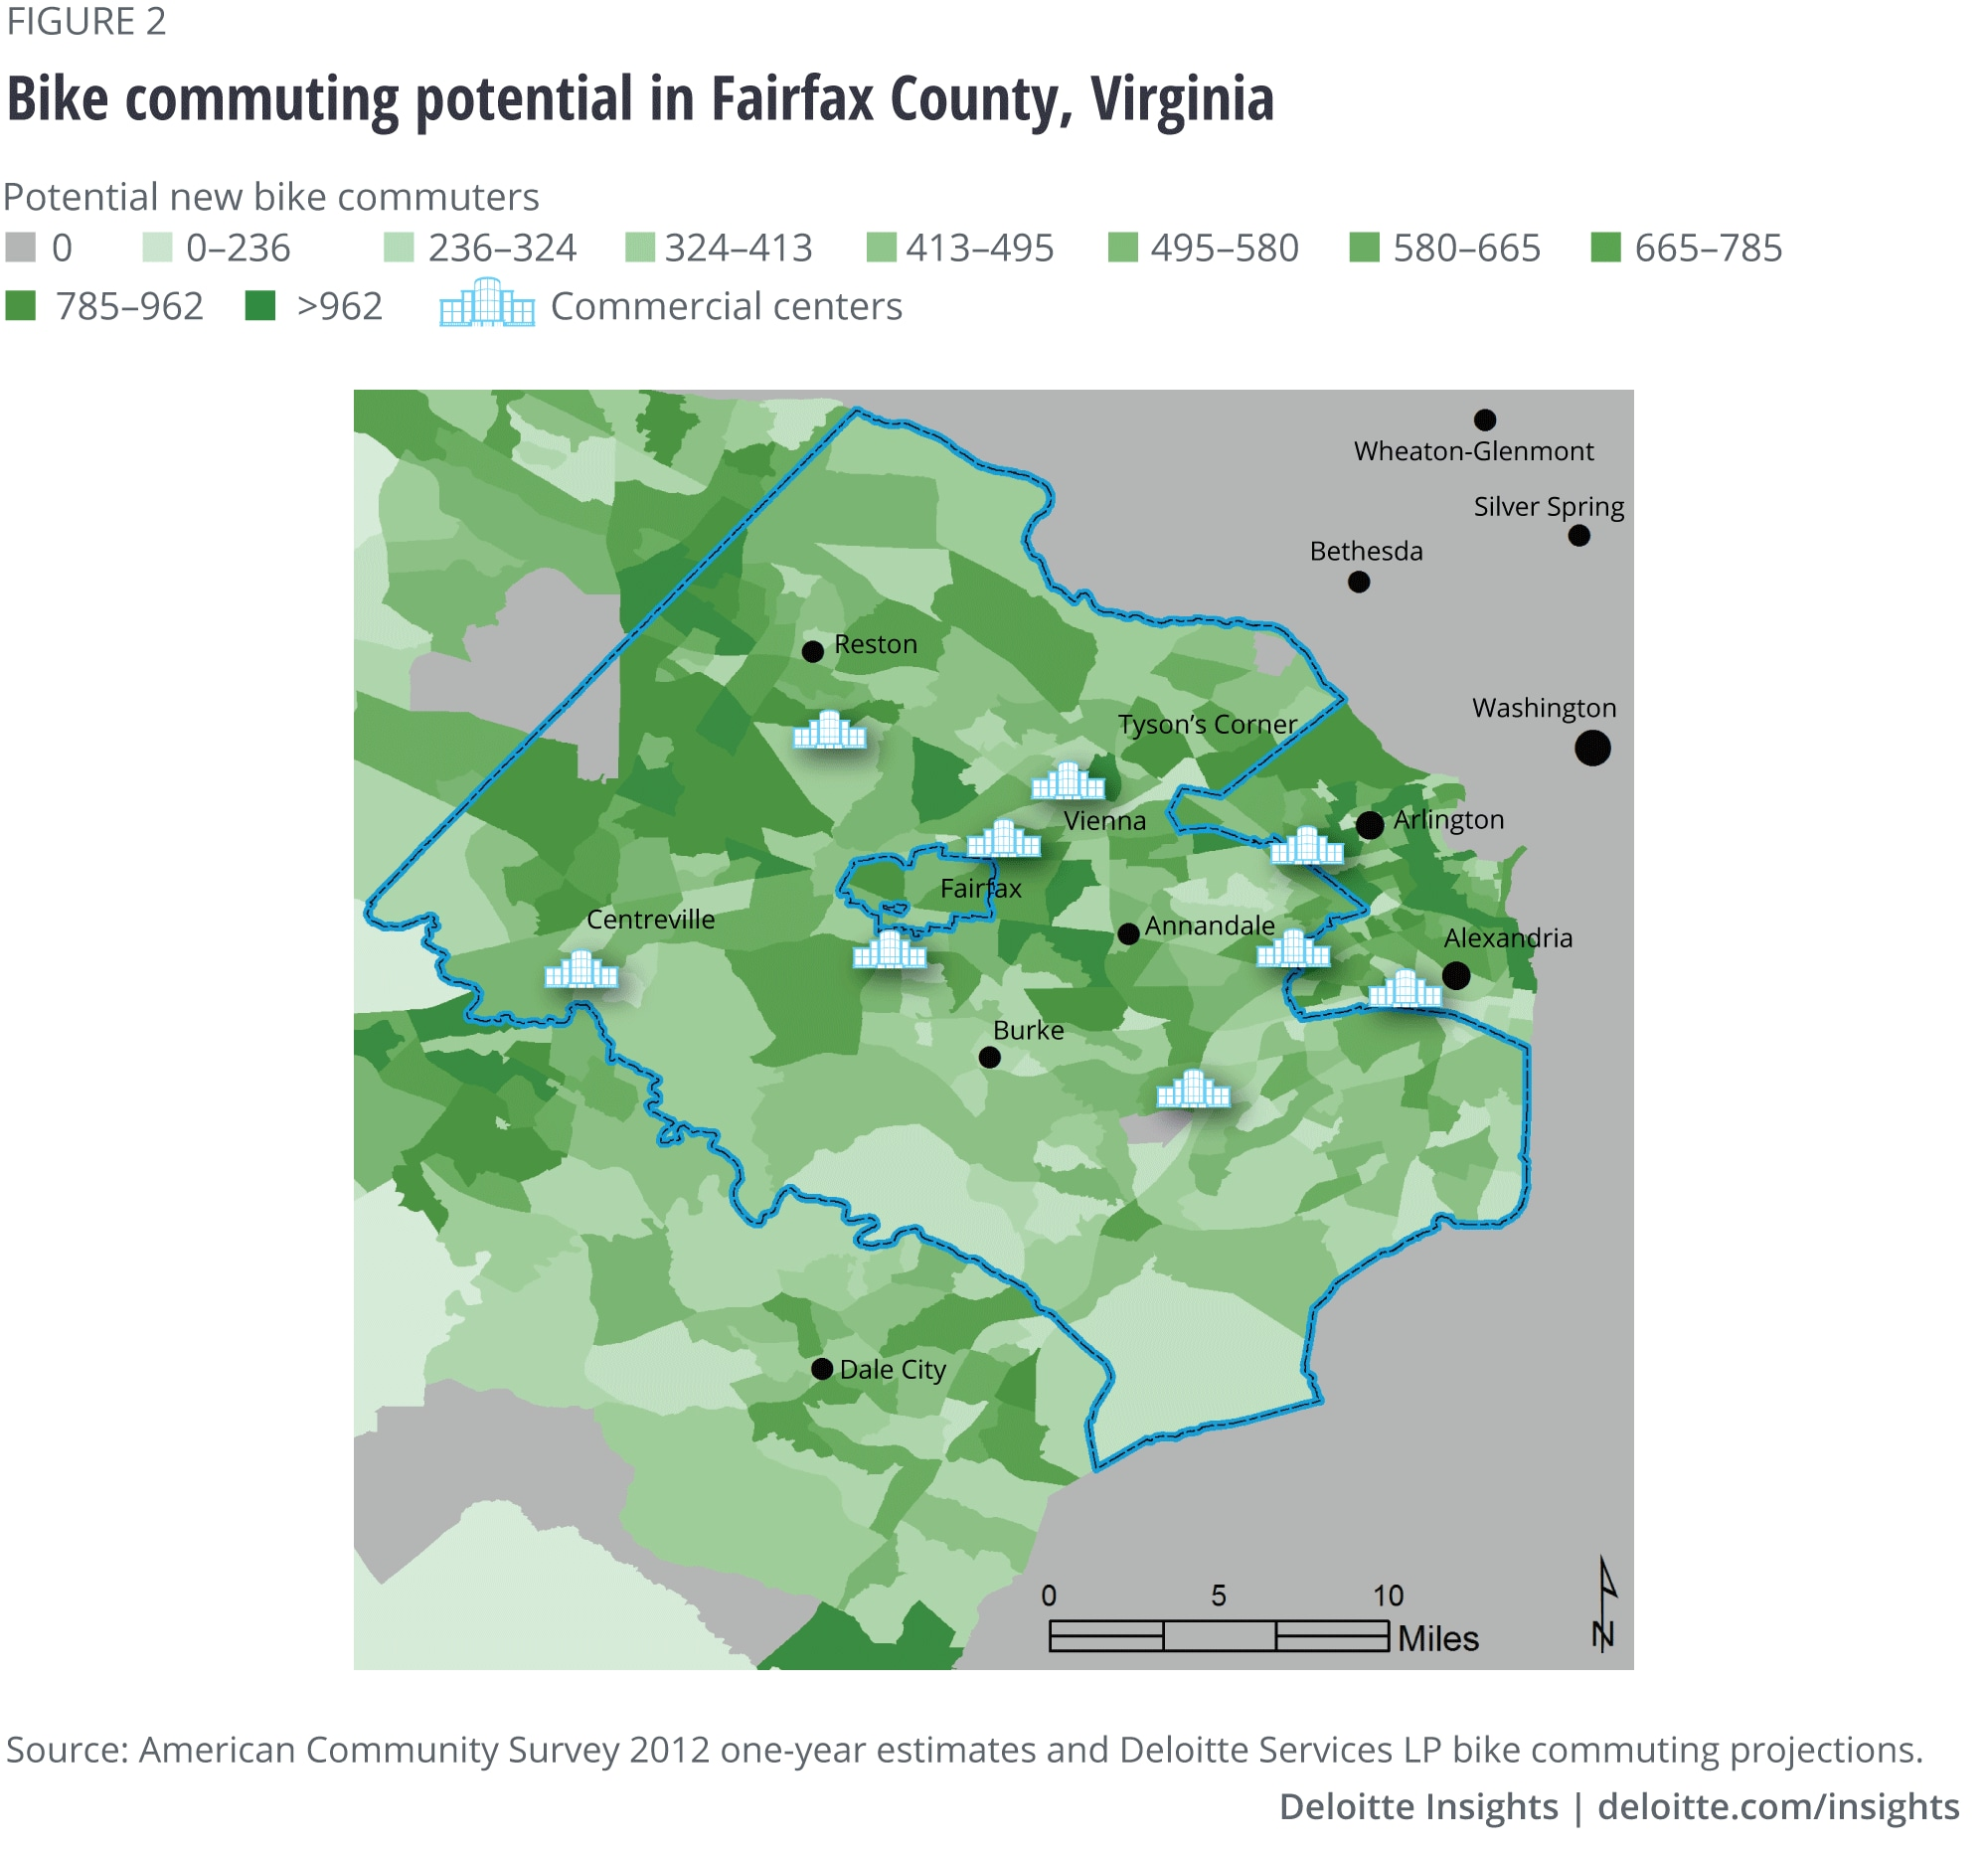 Bike commuting potential in Fairfax County, Virginia